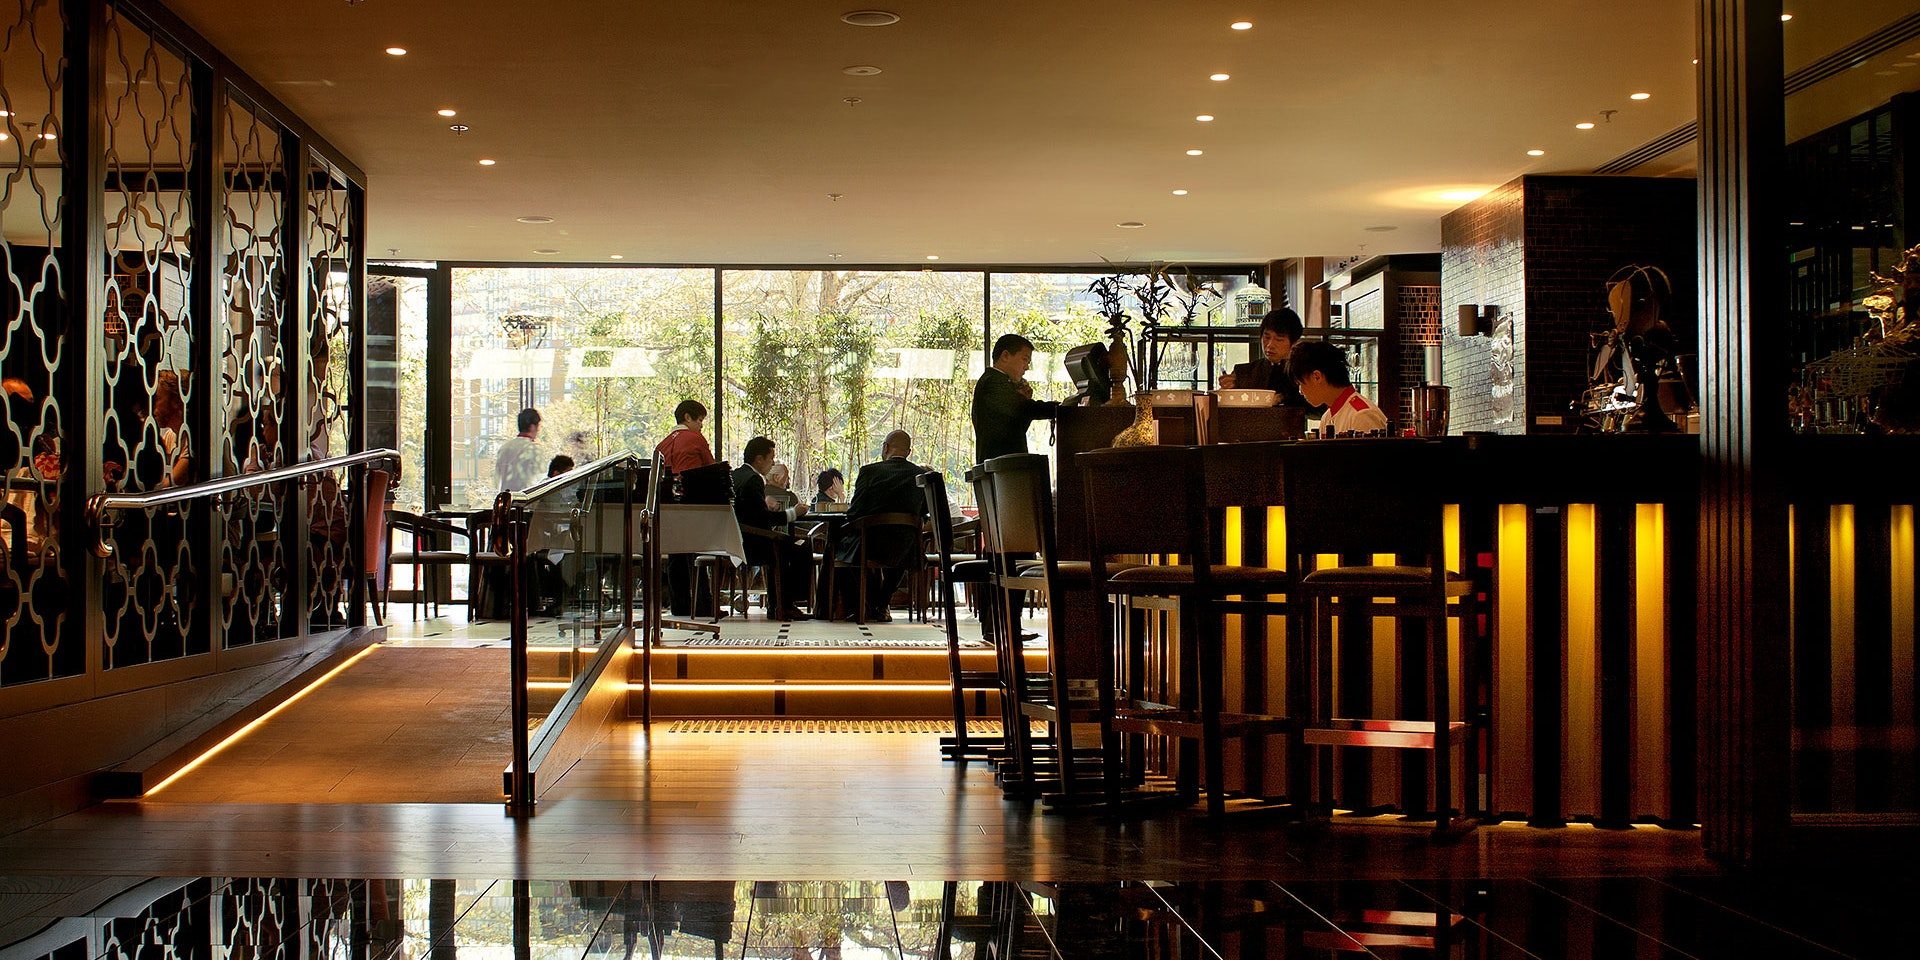 Primo LED strip in application, installed in Lucky Chan Restaurant in Crown Casino in Melbourne.